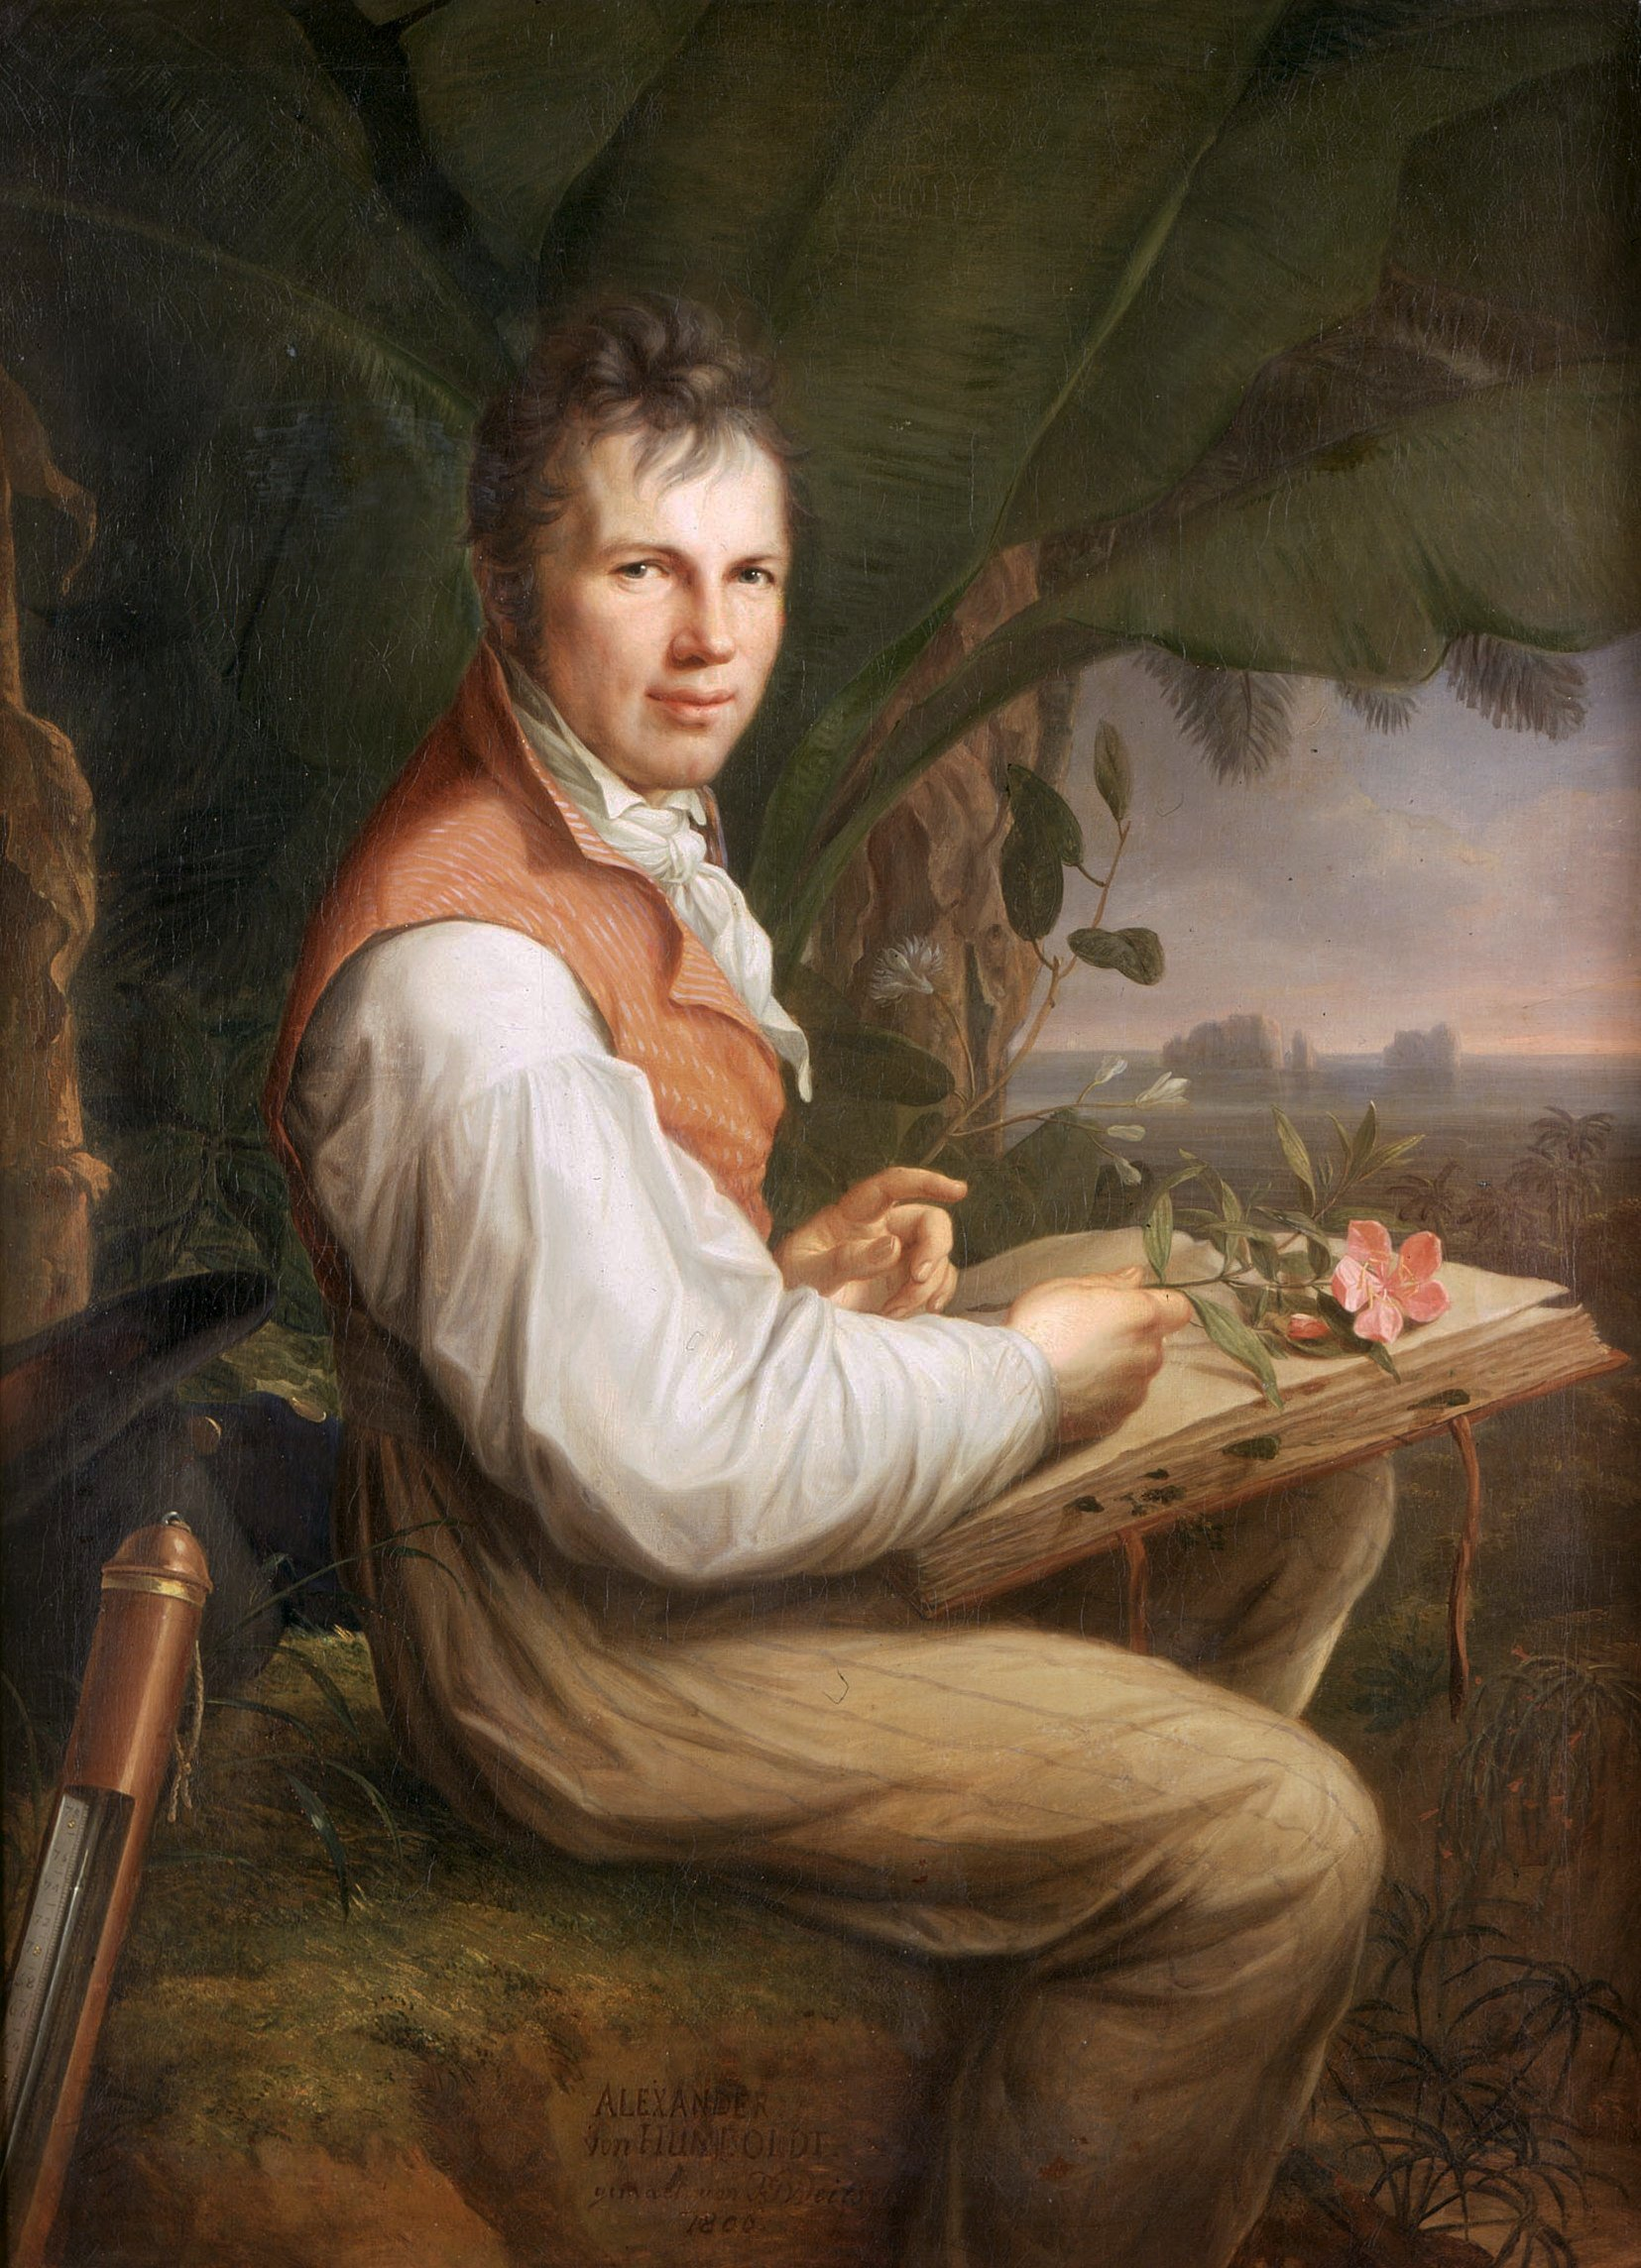 german explorer alexander von humboldt showed his disgust for slavery and often criticized the colonial policieshe always acted out of a deeply humanistic